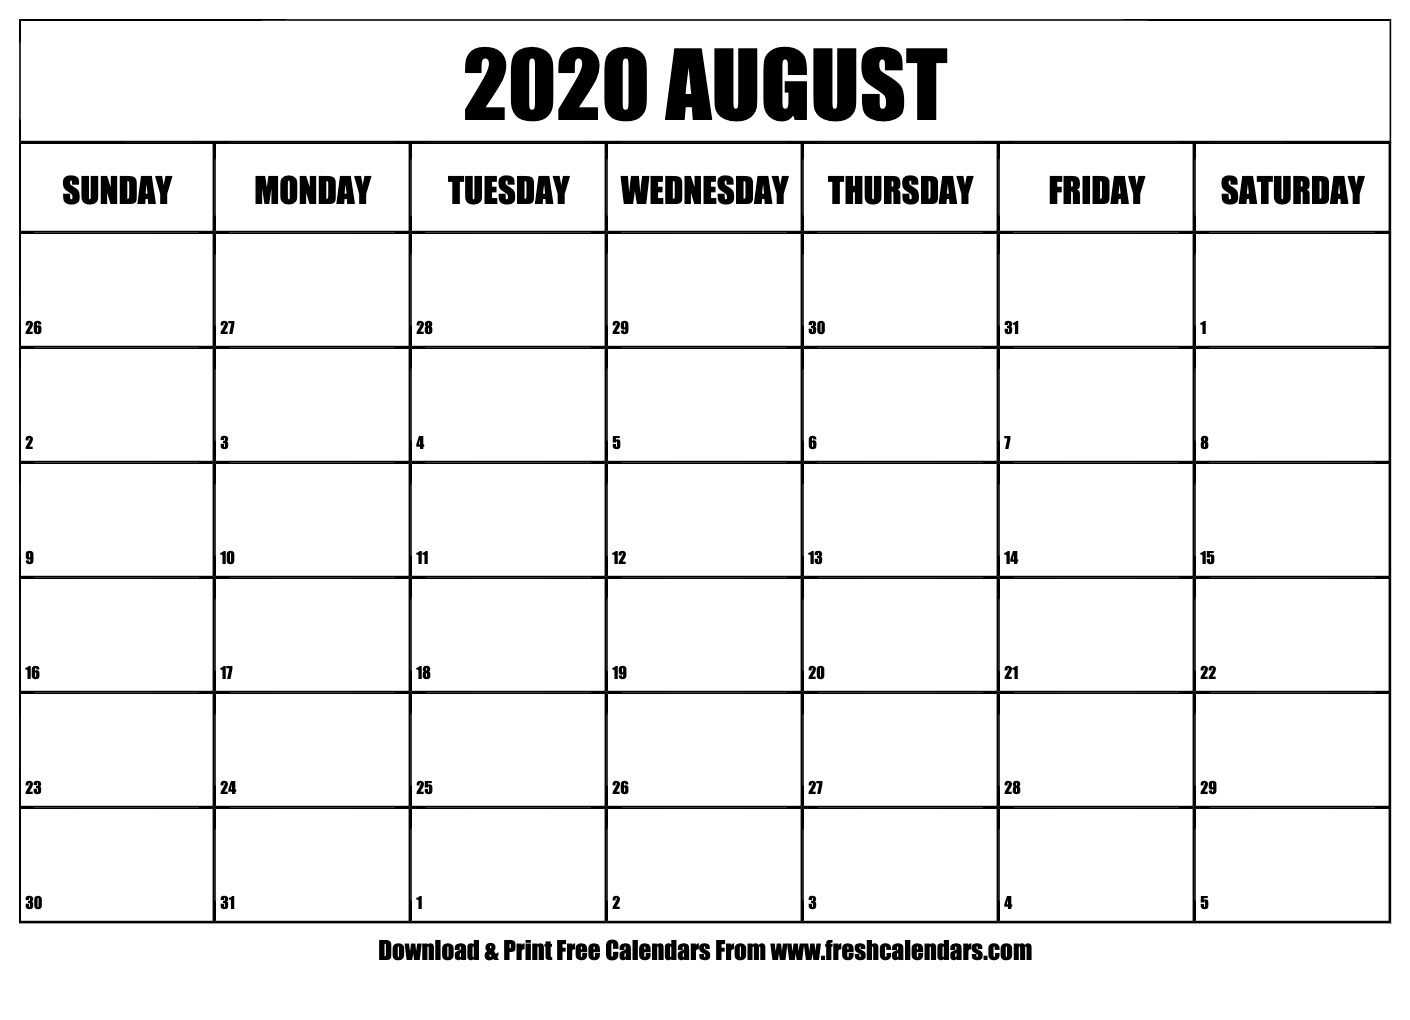 Free Printable August 2020 Calendar within Wincalendar July 2020